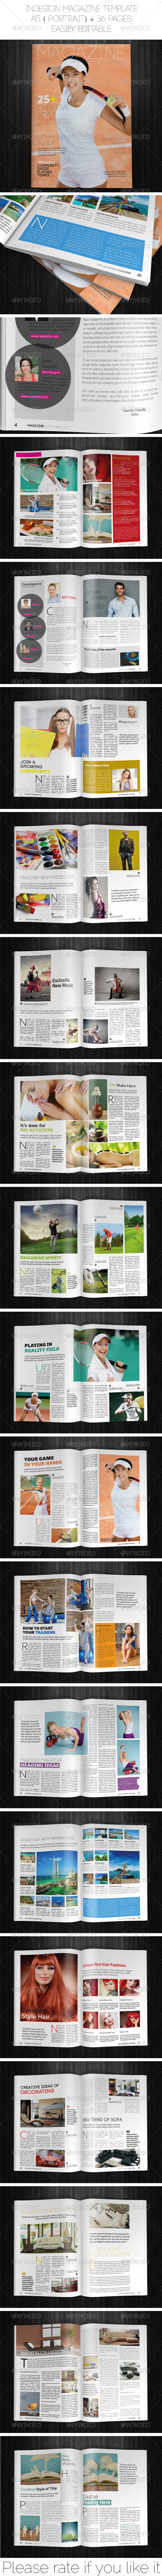 GraphicRiver A5 Portrait Magazine Template 6195794